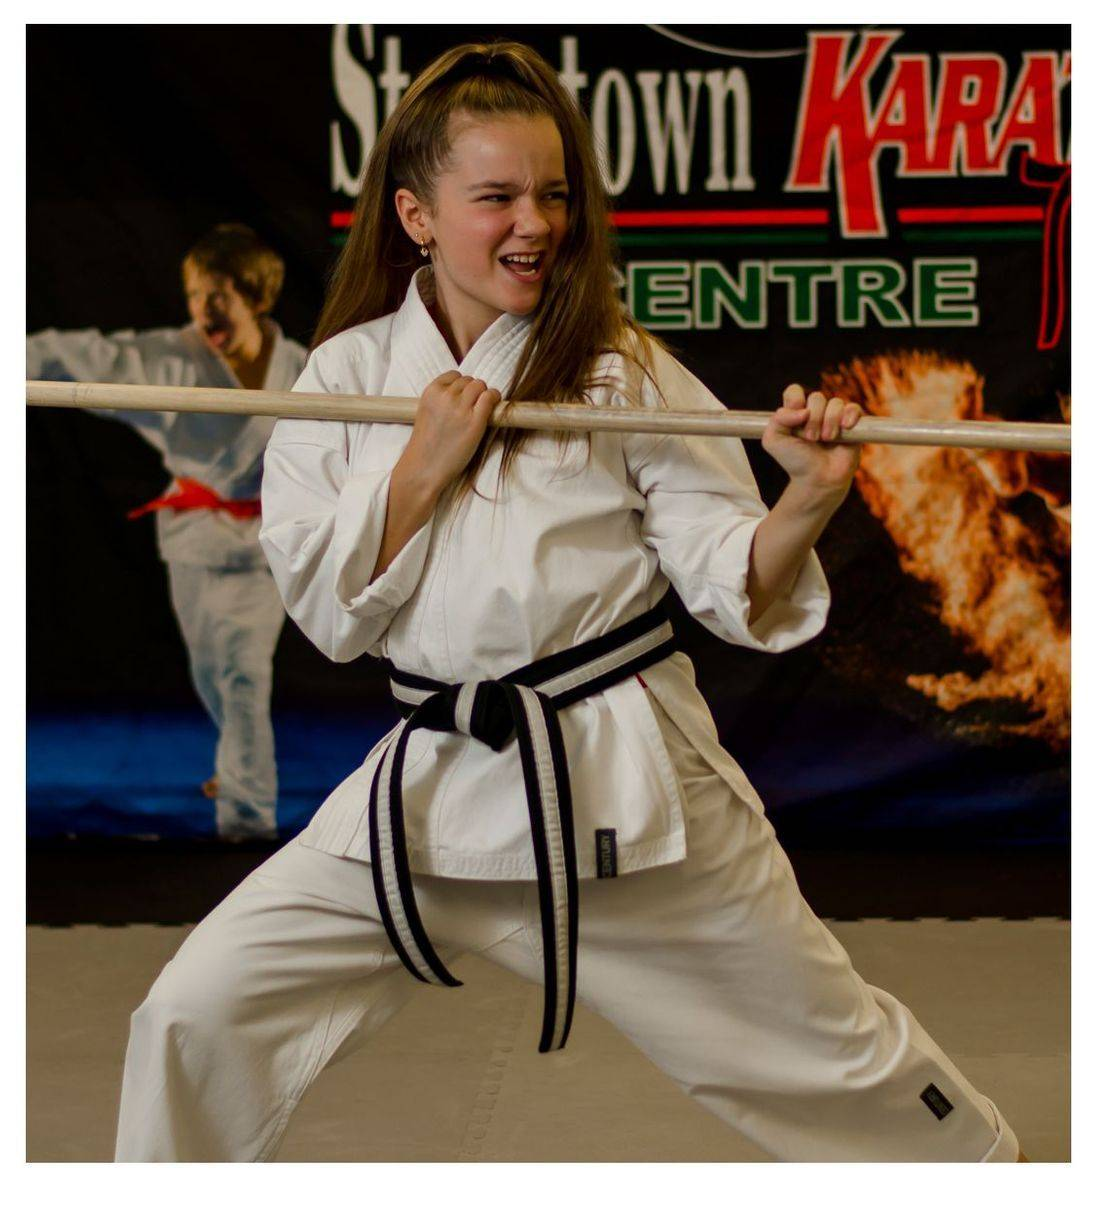 Karate and martial arts lessons and classes